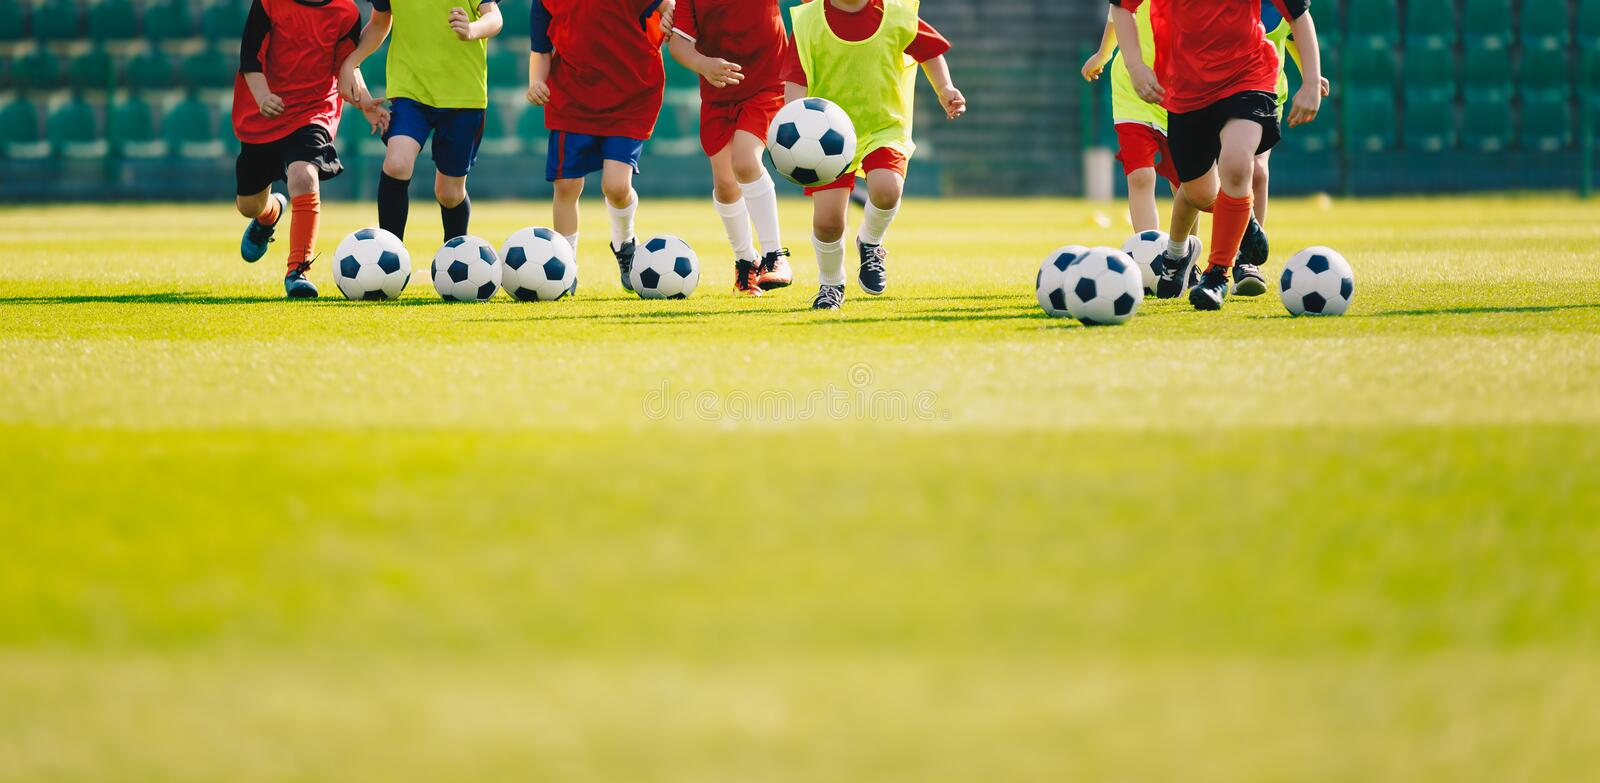 Children play soccer at grass sports field. Football training for kids. Children running and kicking soccer balls at soccer pitch. Soccer background with copy stock photos